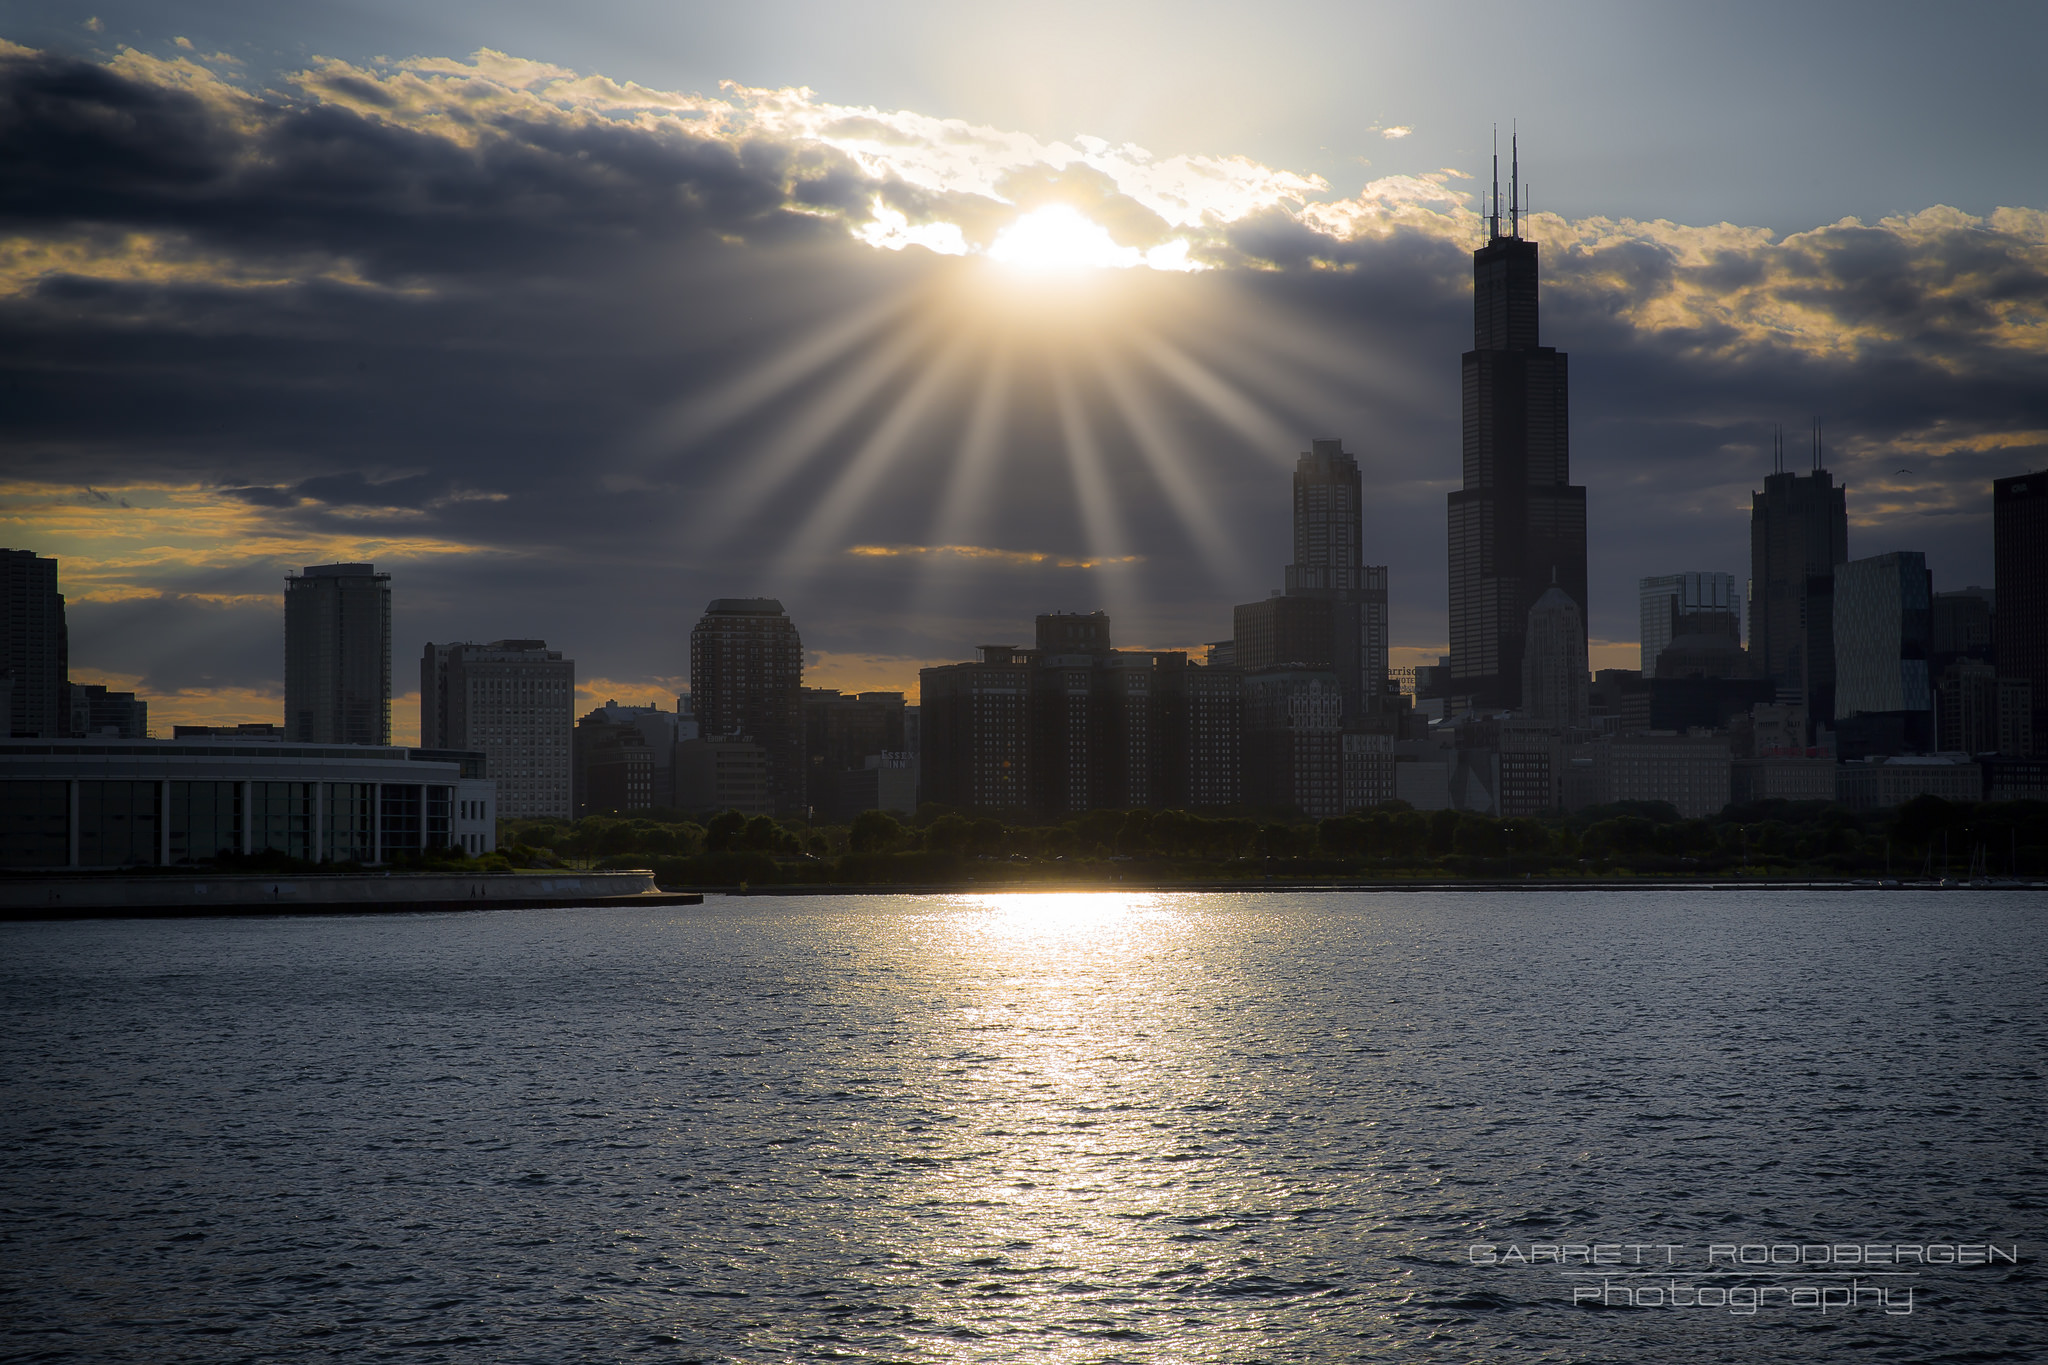 Doorway above the City  #chicago #sun #light #theheavens